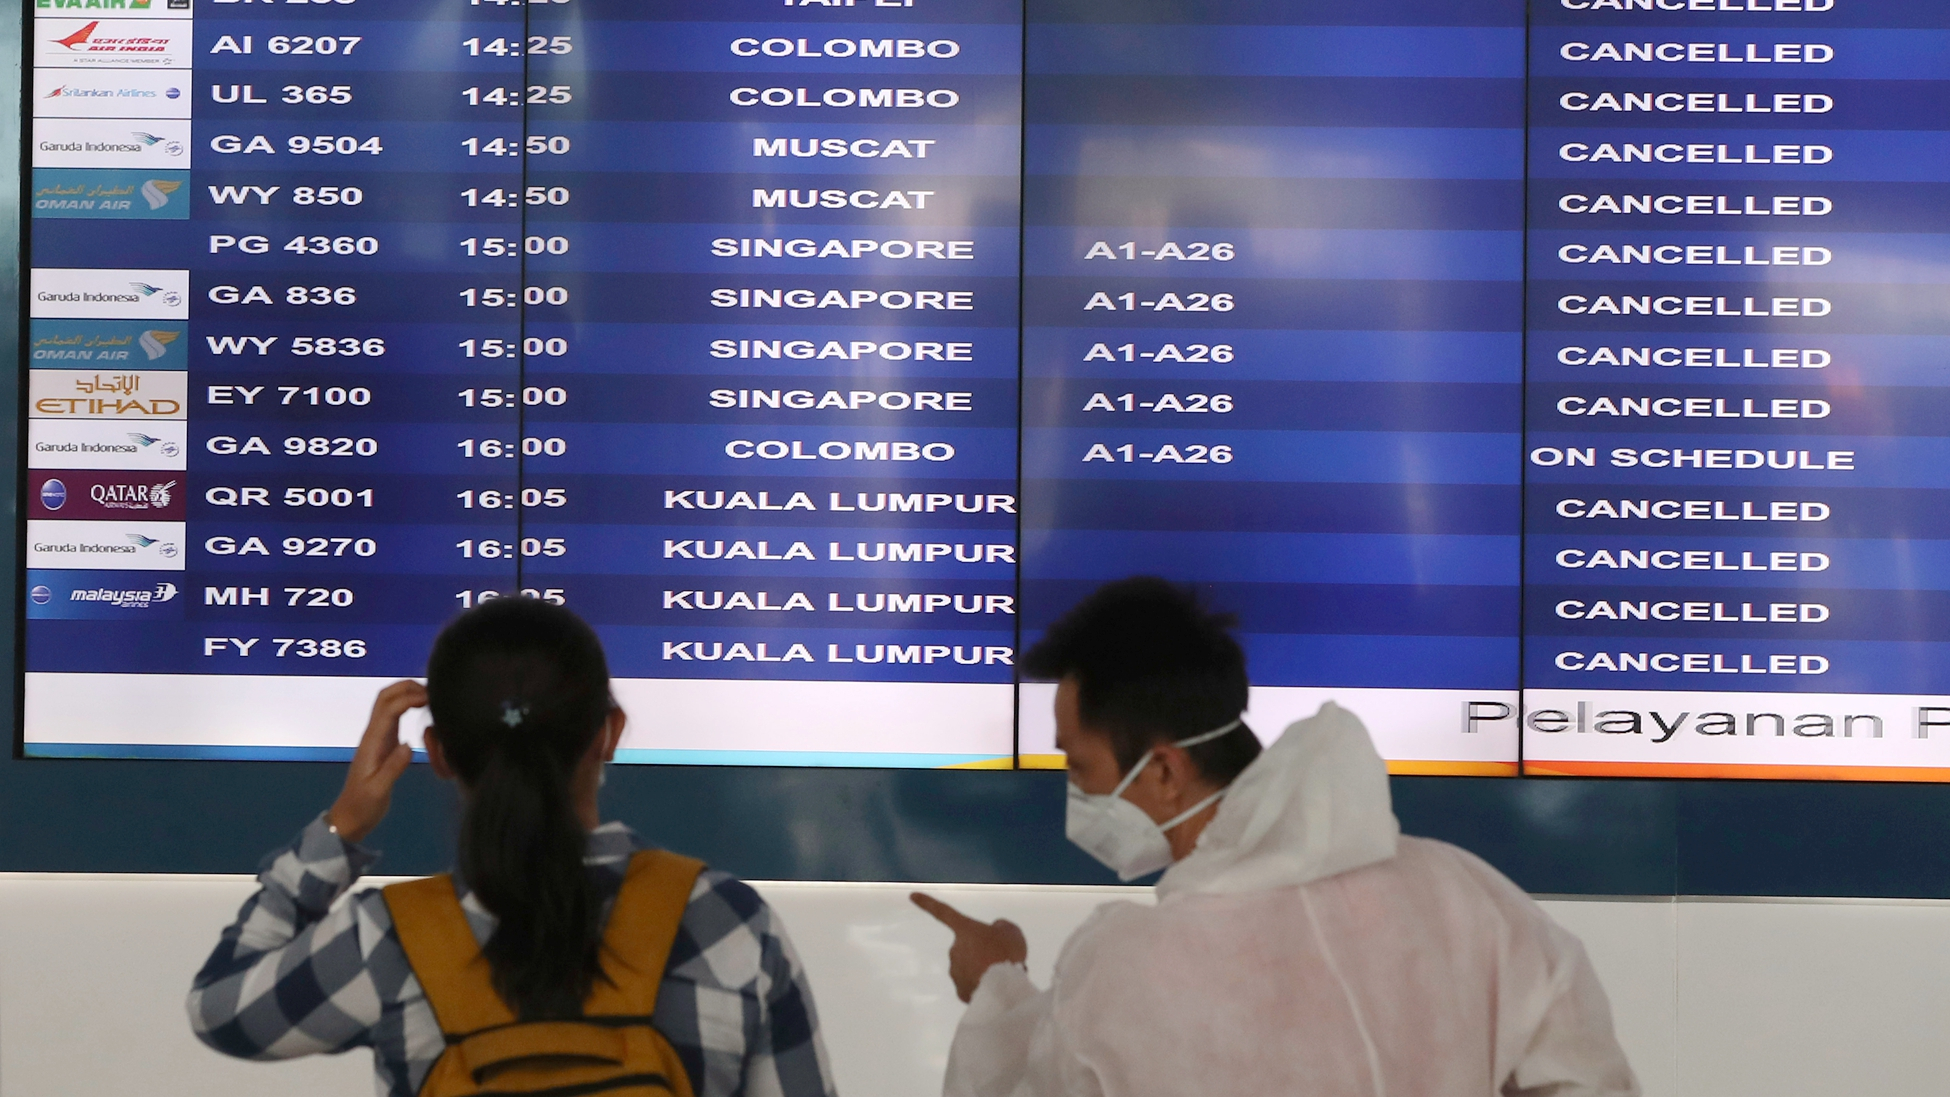 Pandemic exposes gaps in travel insurance coverage